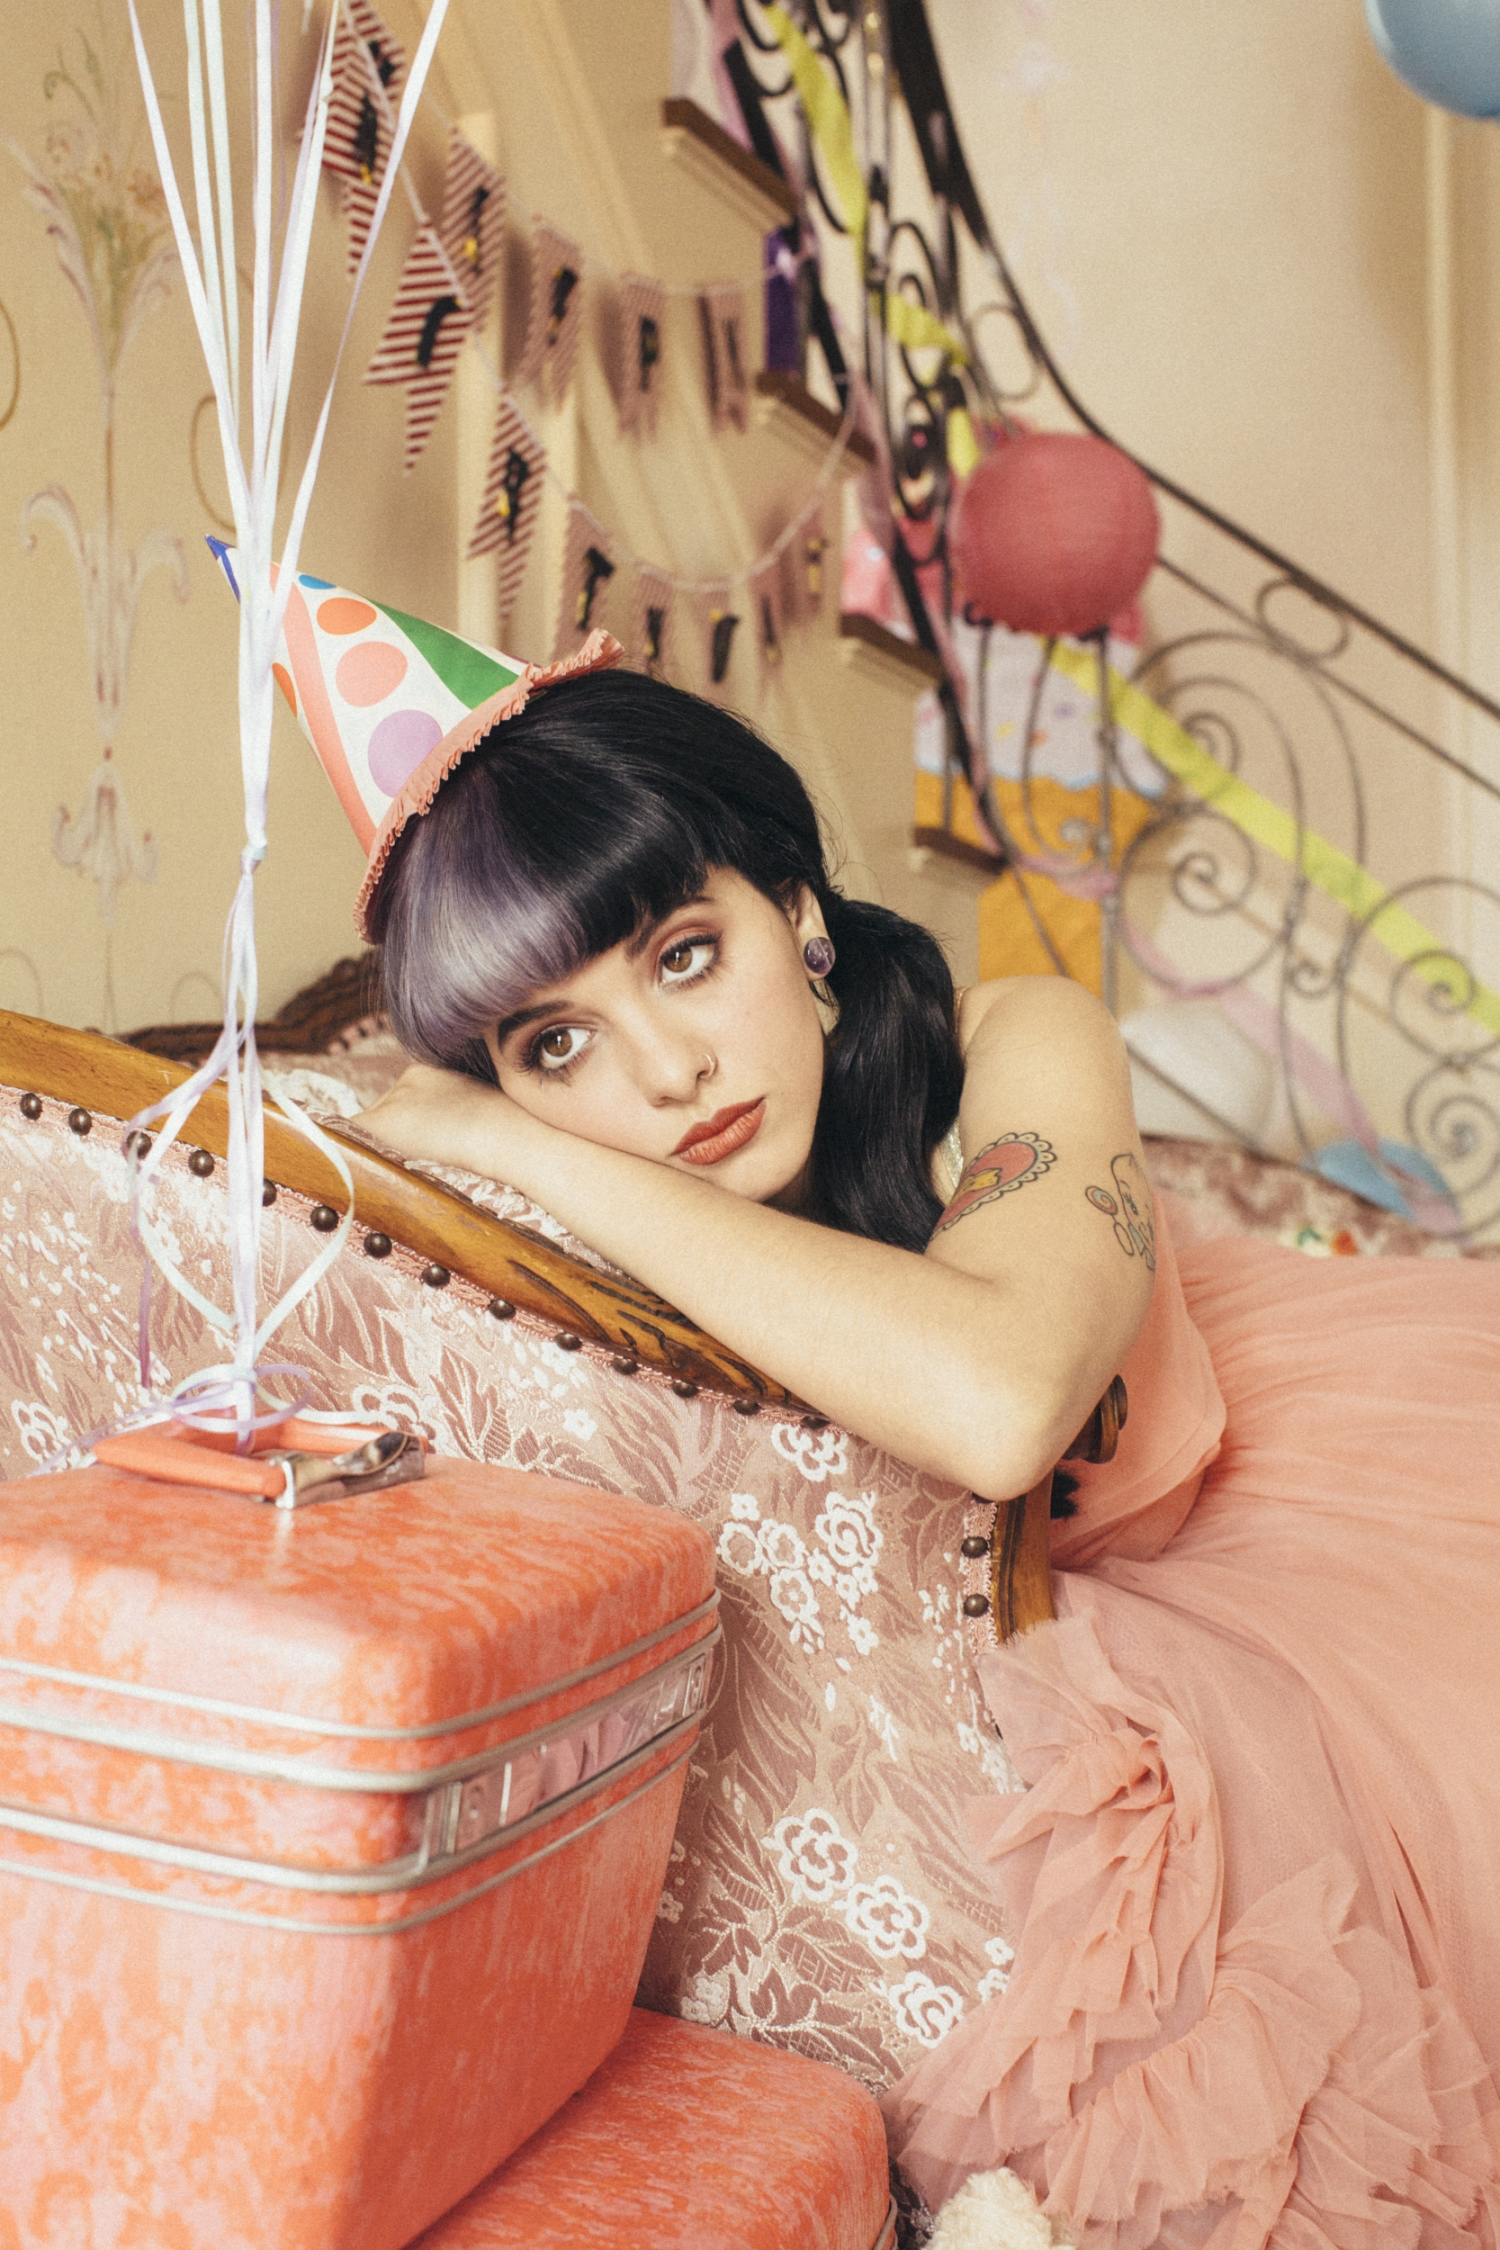 Melanie Martinez - Press 2 - Catie Laffoon